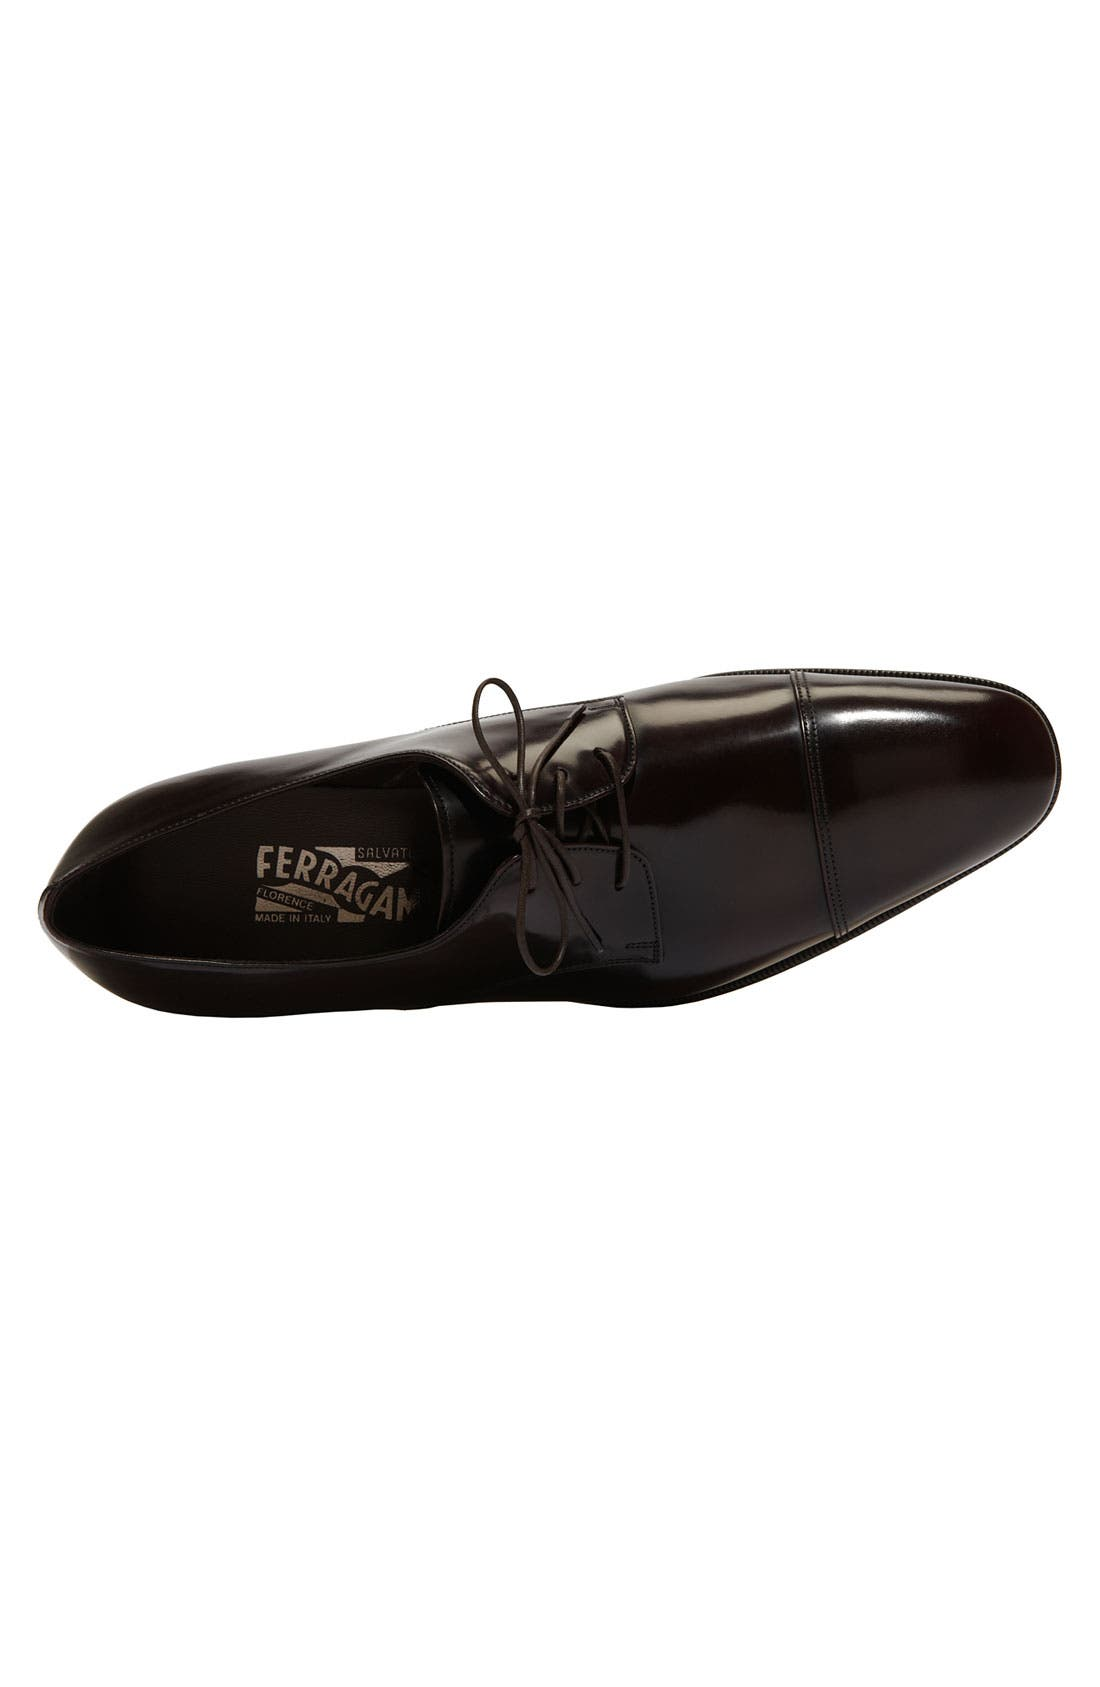 Alternate Image 3  - Salvatore Ferragamo 'Faraone' Cap Toe Oxford (Men)